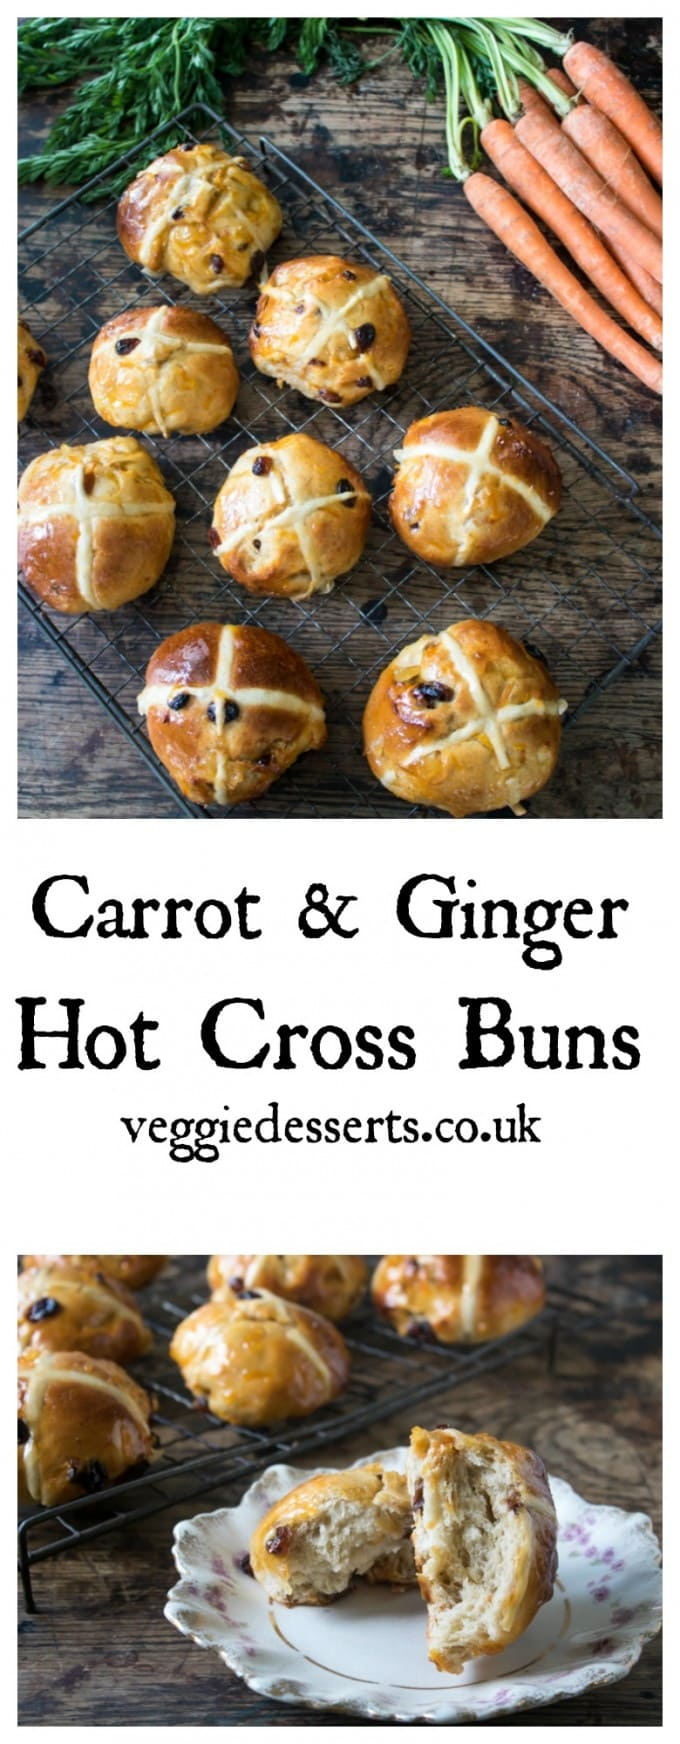 These fluffy and tasty carrot and ginger hot cross buns are a different take on the classic Easter treat. They need a little while to knead and rise, but the result are definitely worth it! #easter #easterrecipe #hotcrossbuns #hotcross #bread